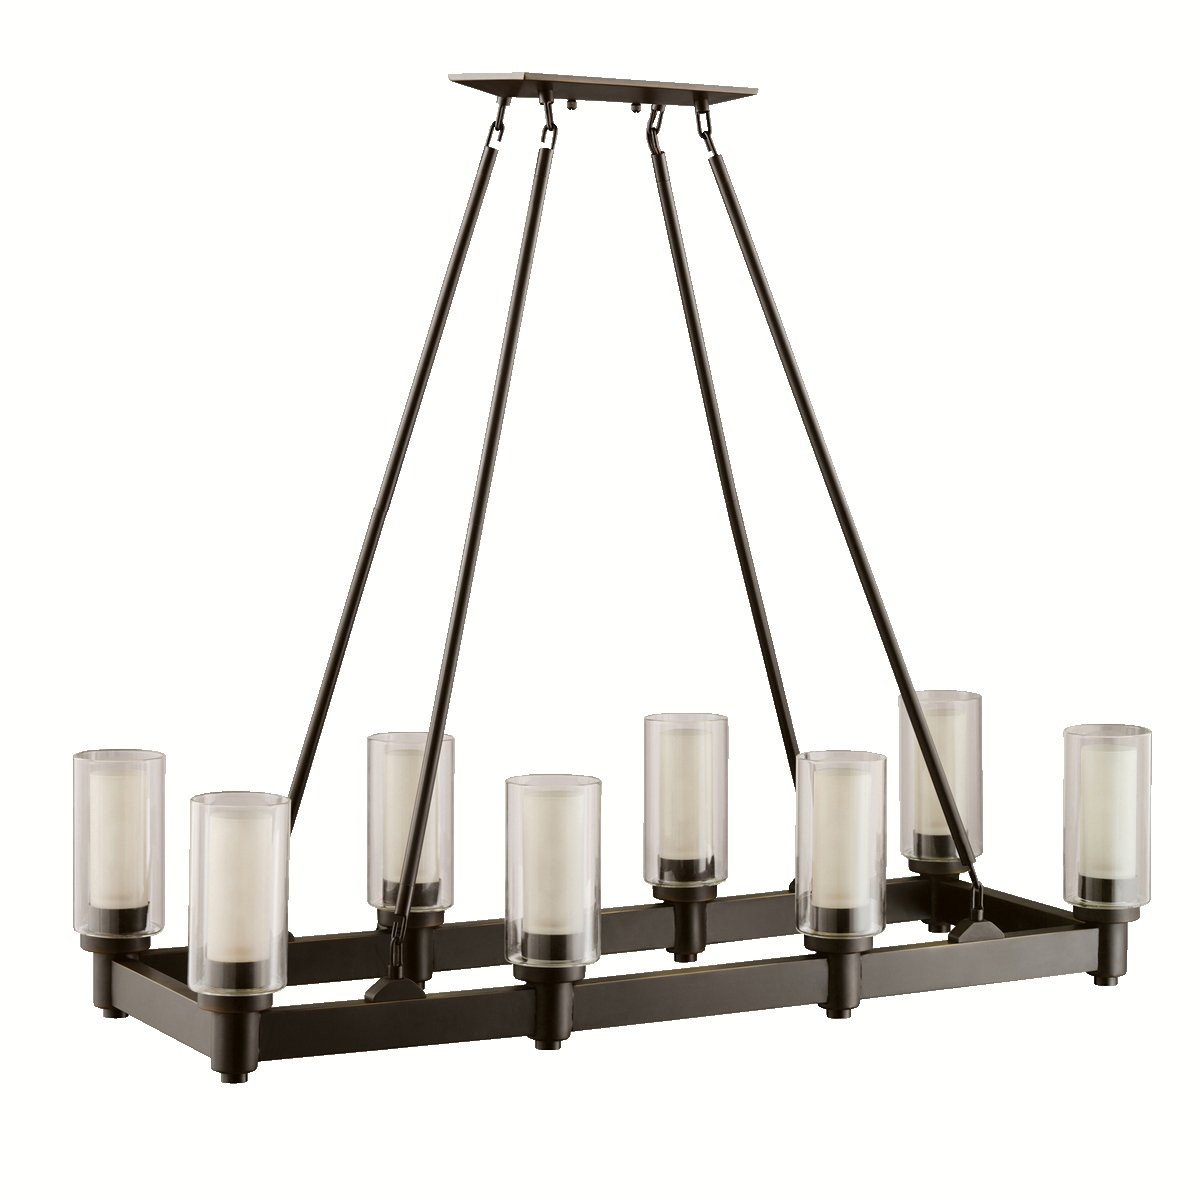 Kichler 2943ni eight light linear chandelier kichler light circolo kichler 2943ni eight light linear chandelier kichler light circolo rectangular amazon arubaitofo Choice Image